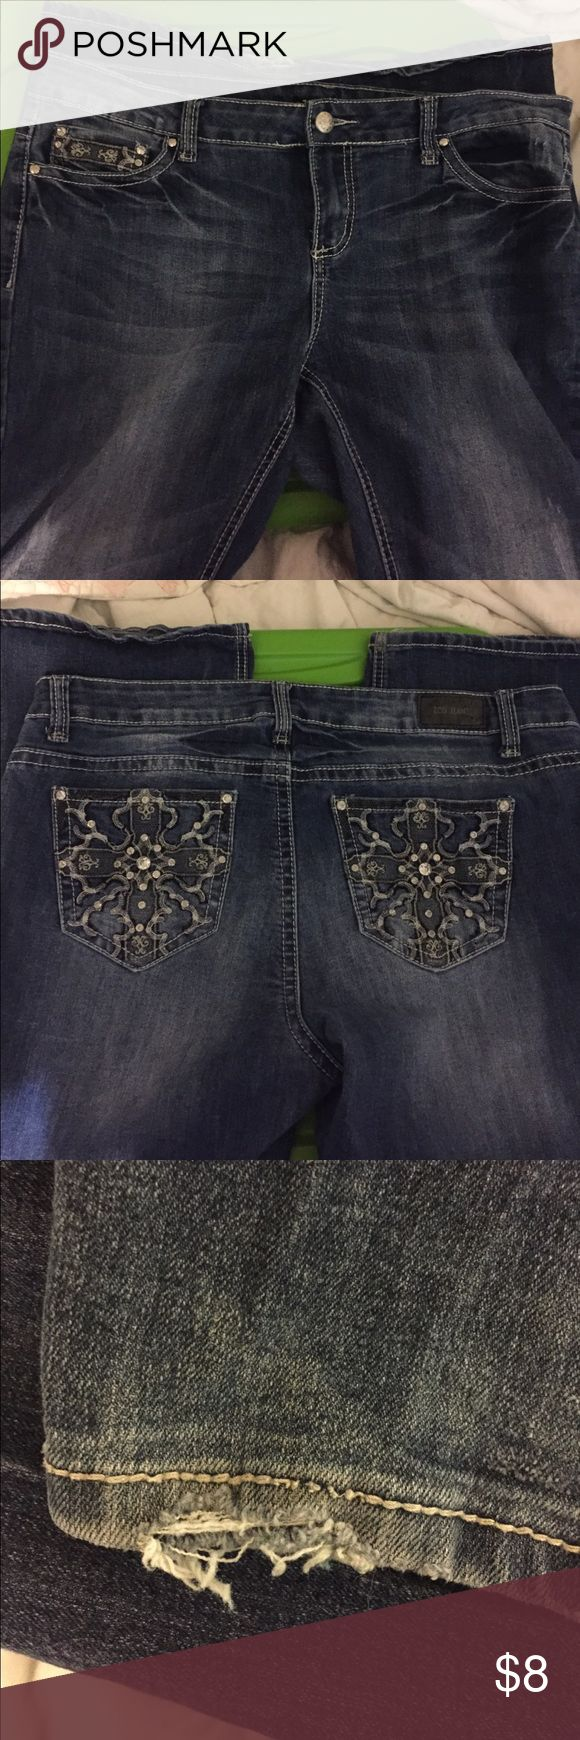 ZCO jeans ZCO jeans good condition with some freying one one leg in hem as shown in pic size 18 ZCO Jeans Straight Leg